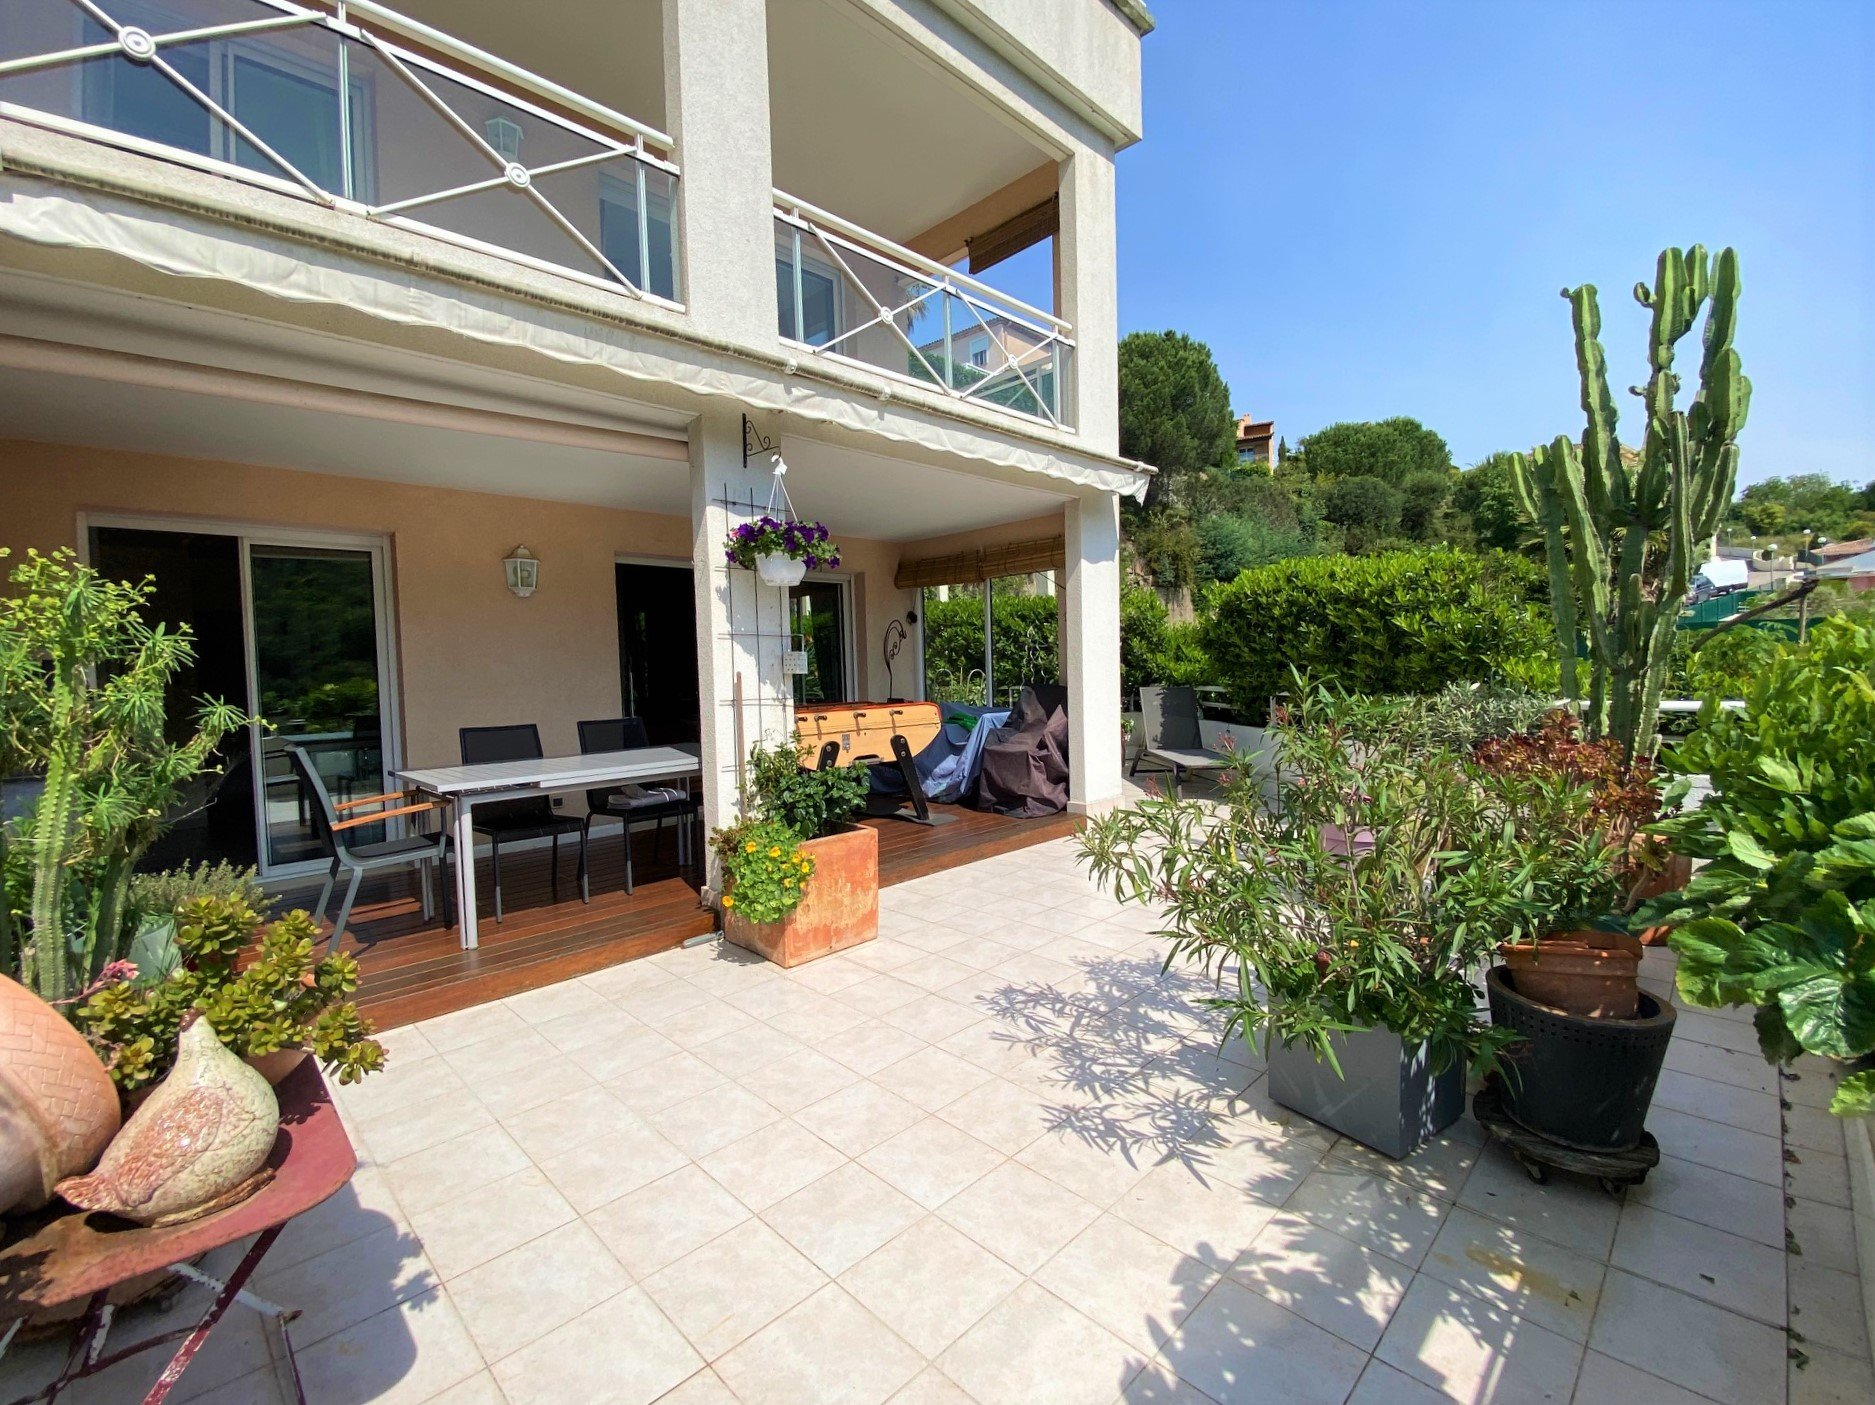 CANNES SALE 4 ROOMS IN QUIET LARGE TERRACE POOL IN THE RESIDENCE